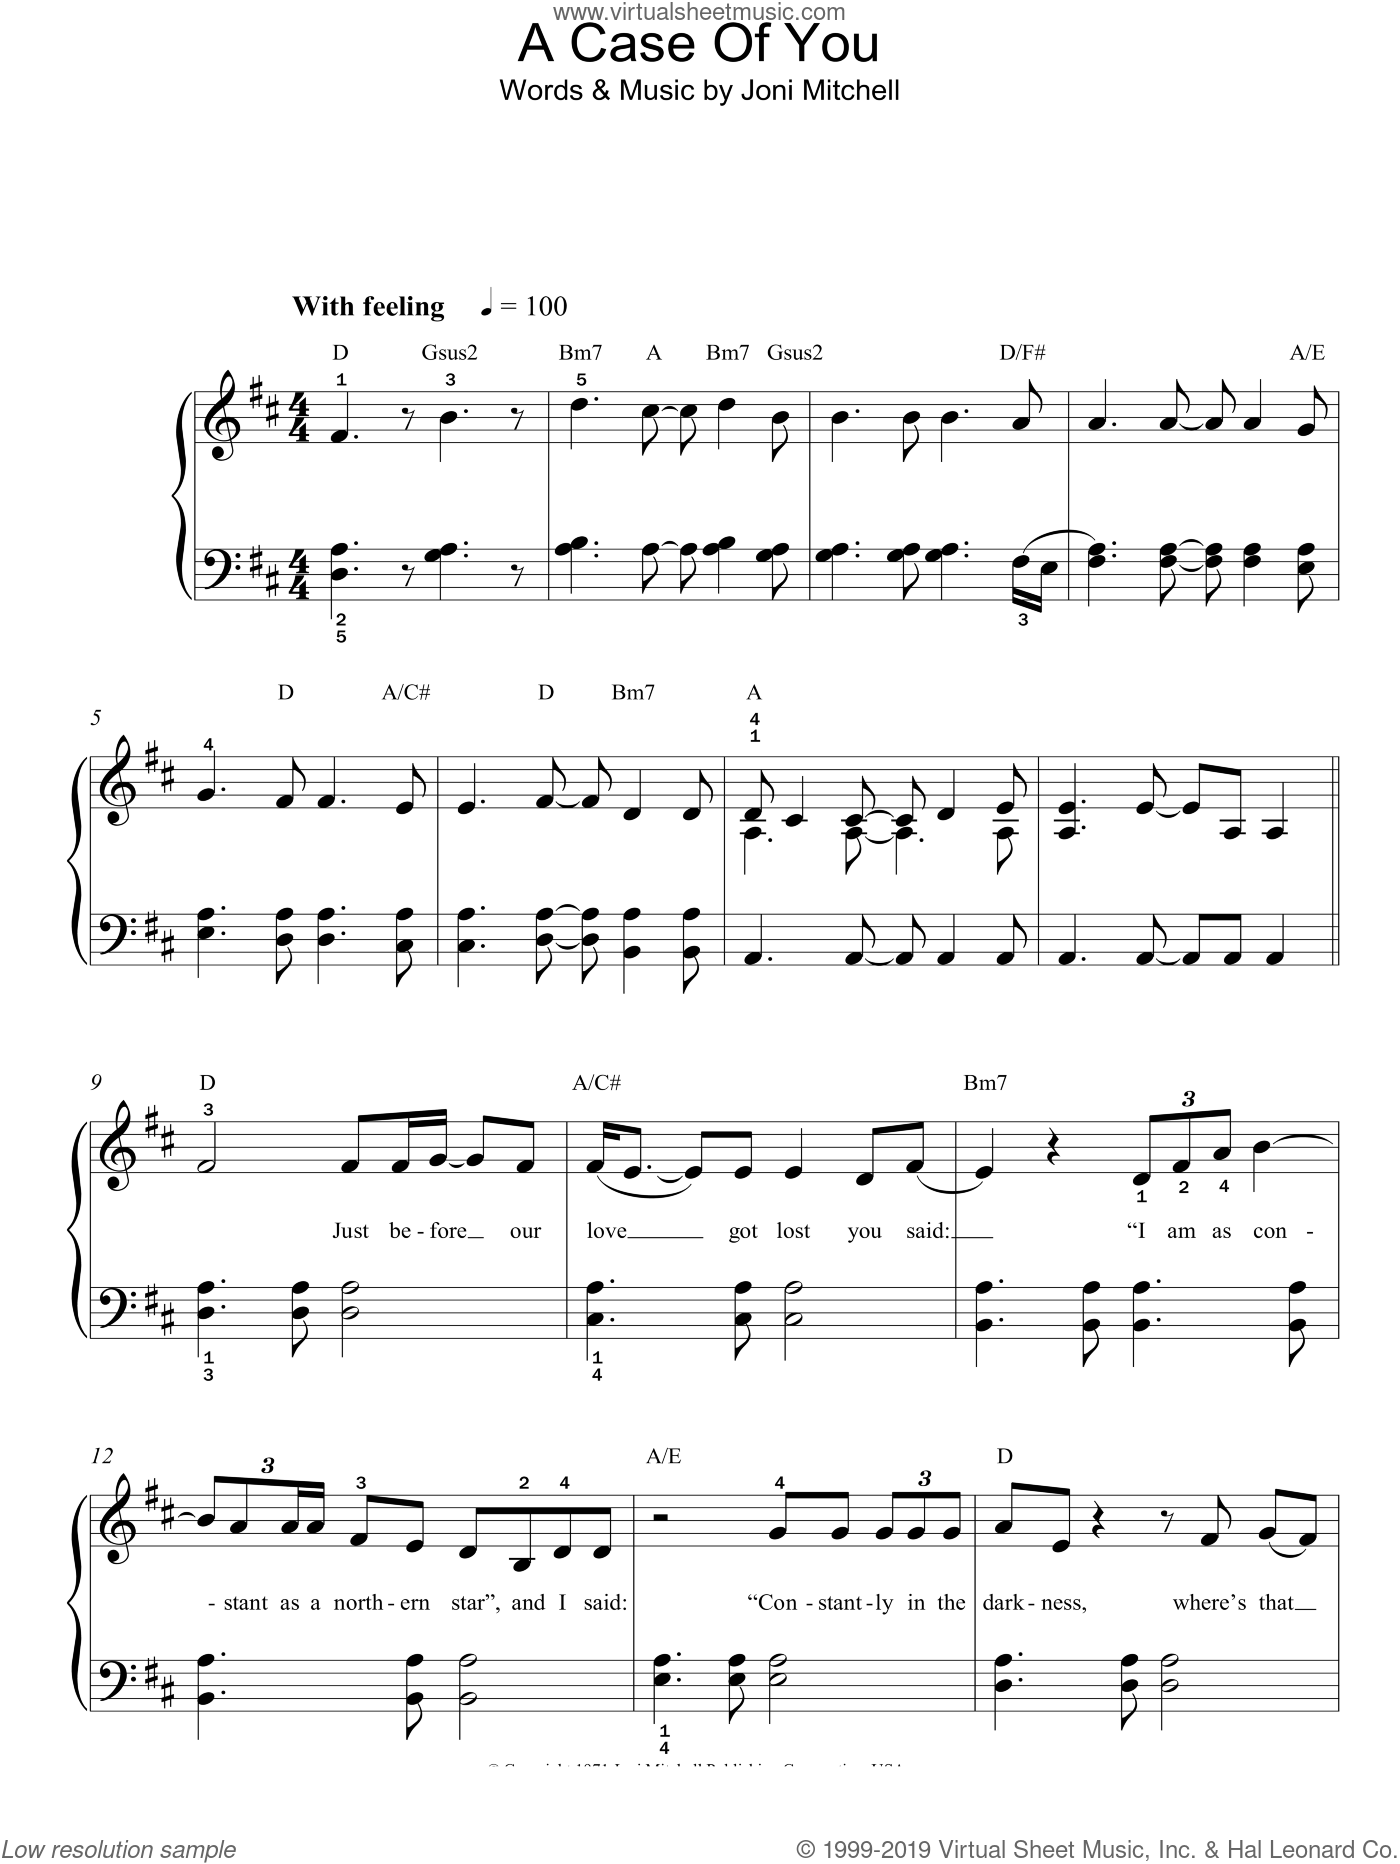 A Case Of You sheet music for piano solo by Joni Mitchell, easy. Score Image Preview.